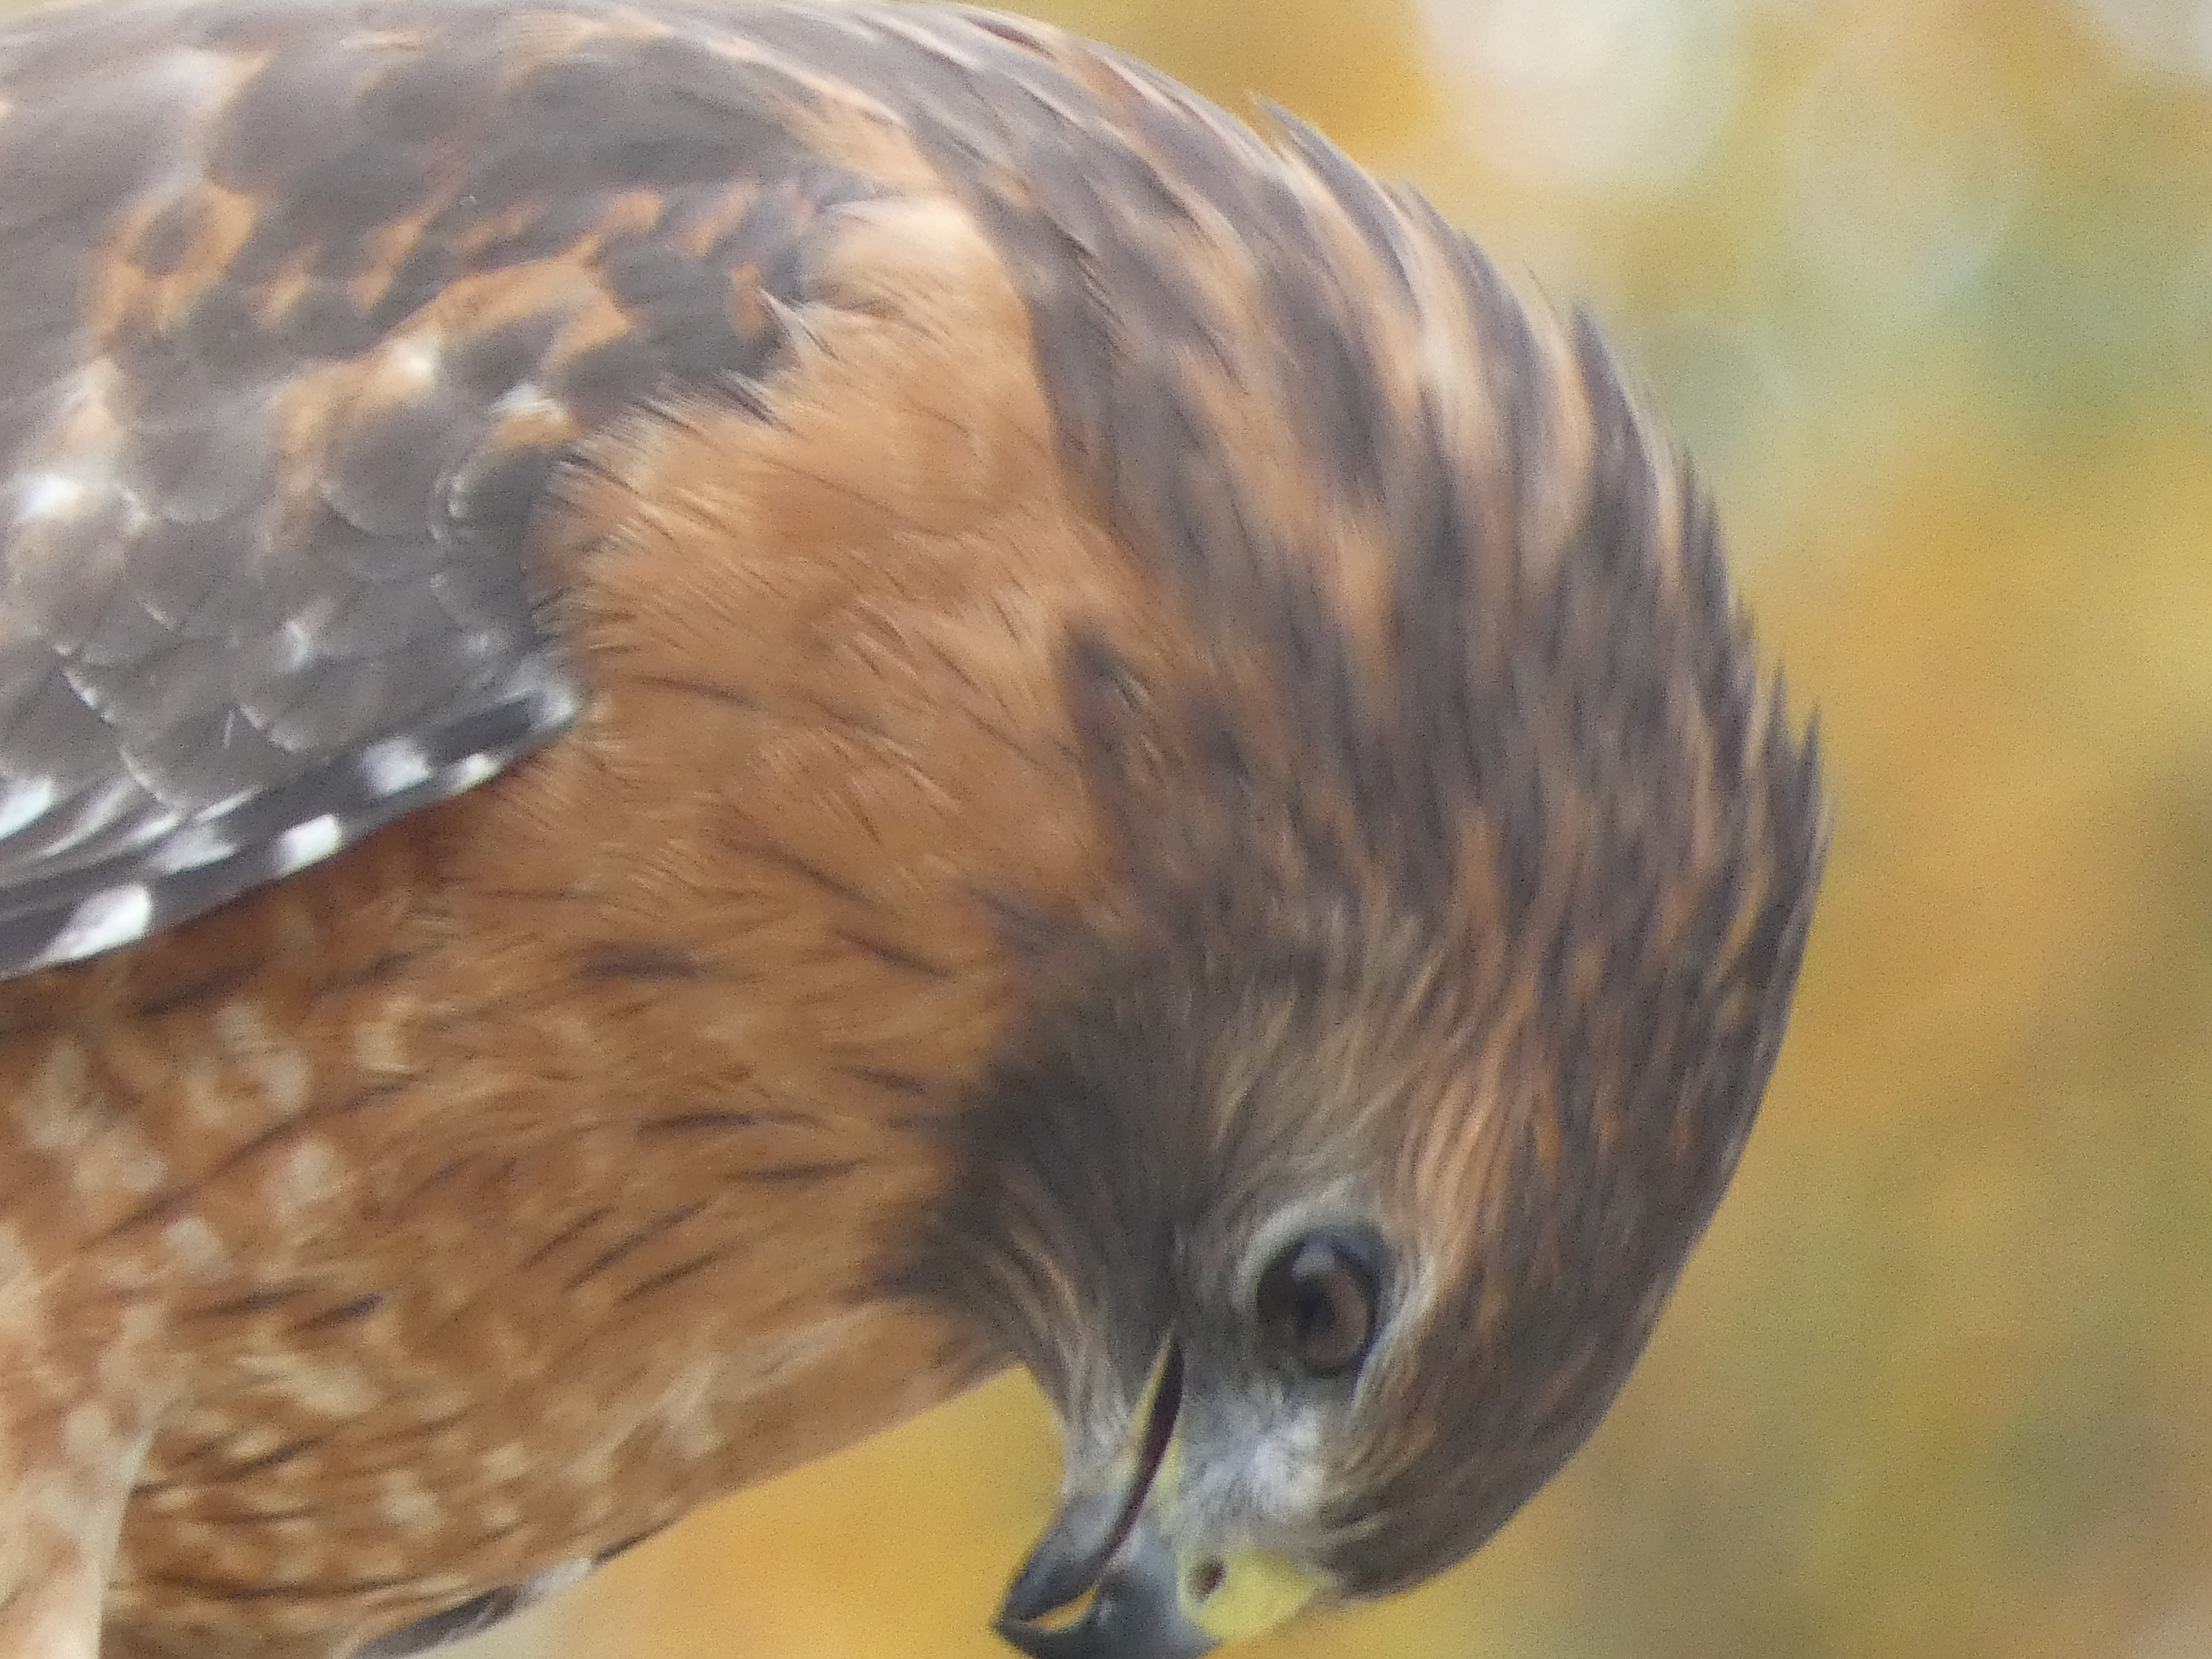 Raptors are my absolute favorites and Red-Shouldered Hawks are especially exquisite.